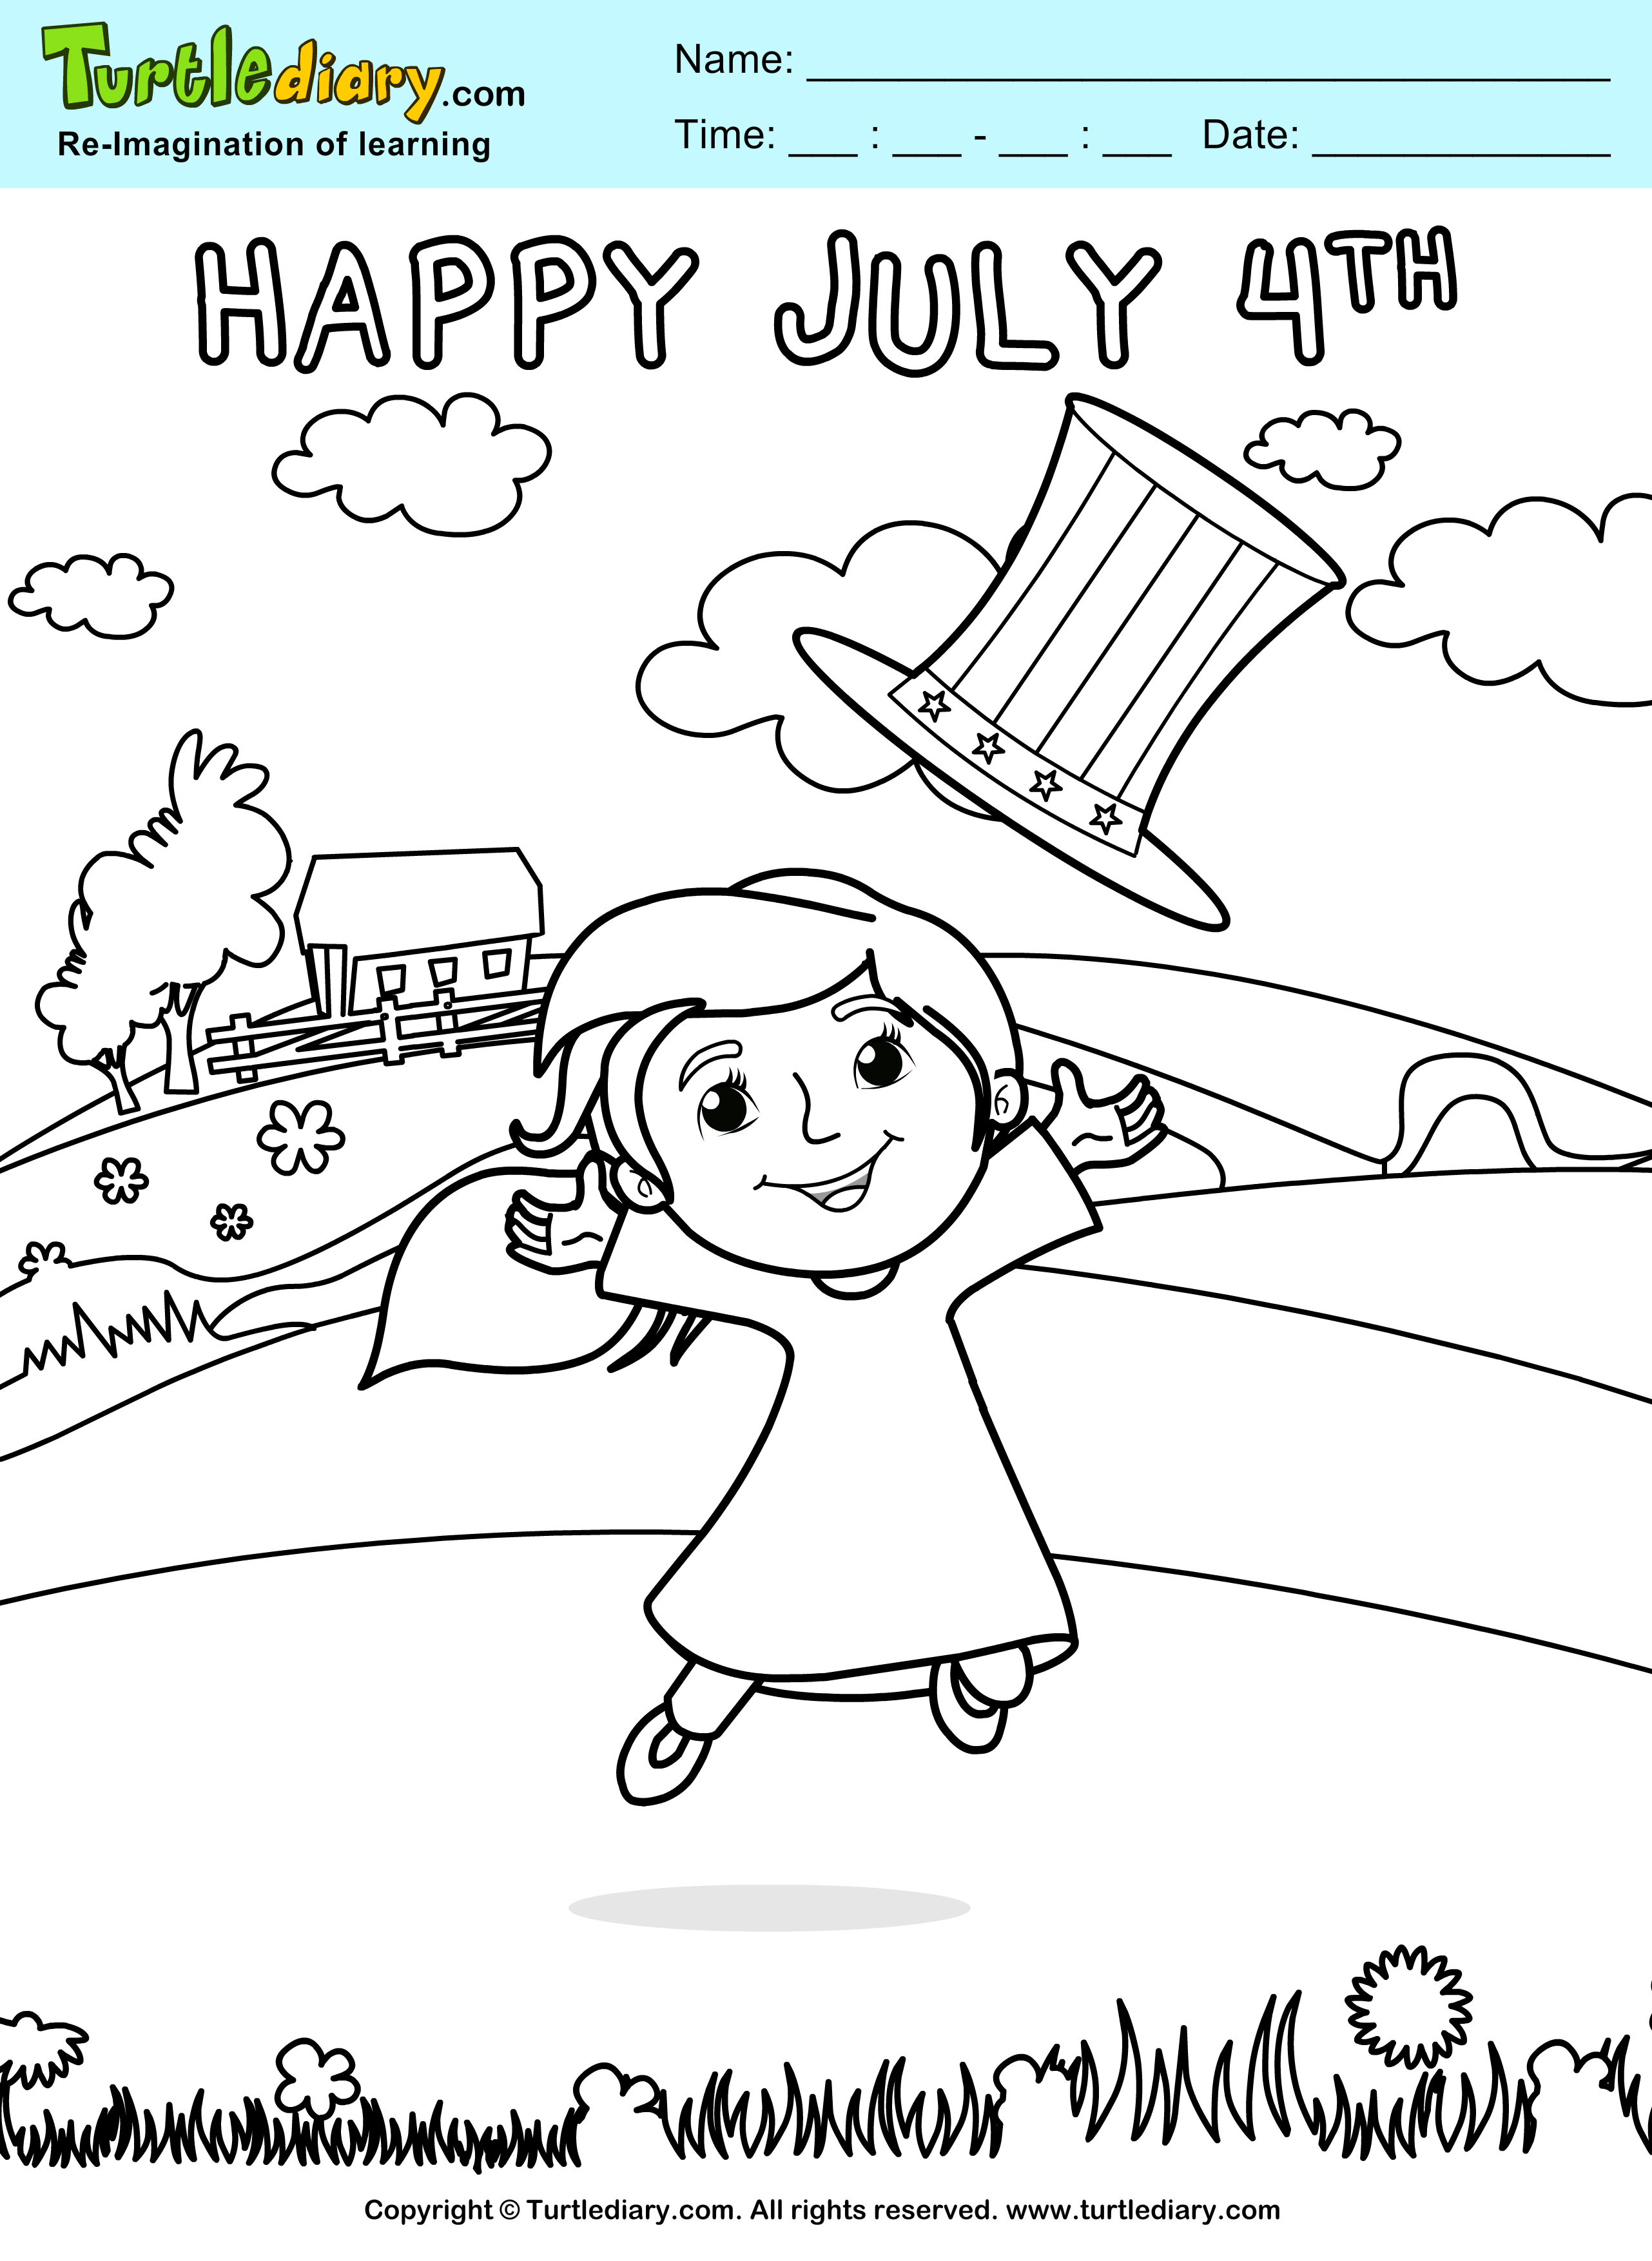 Happy July 4th Printable Coloring Sheet